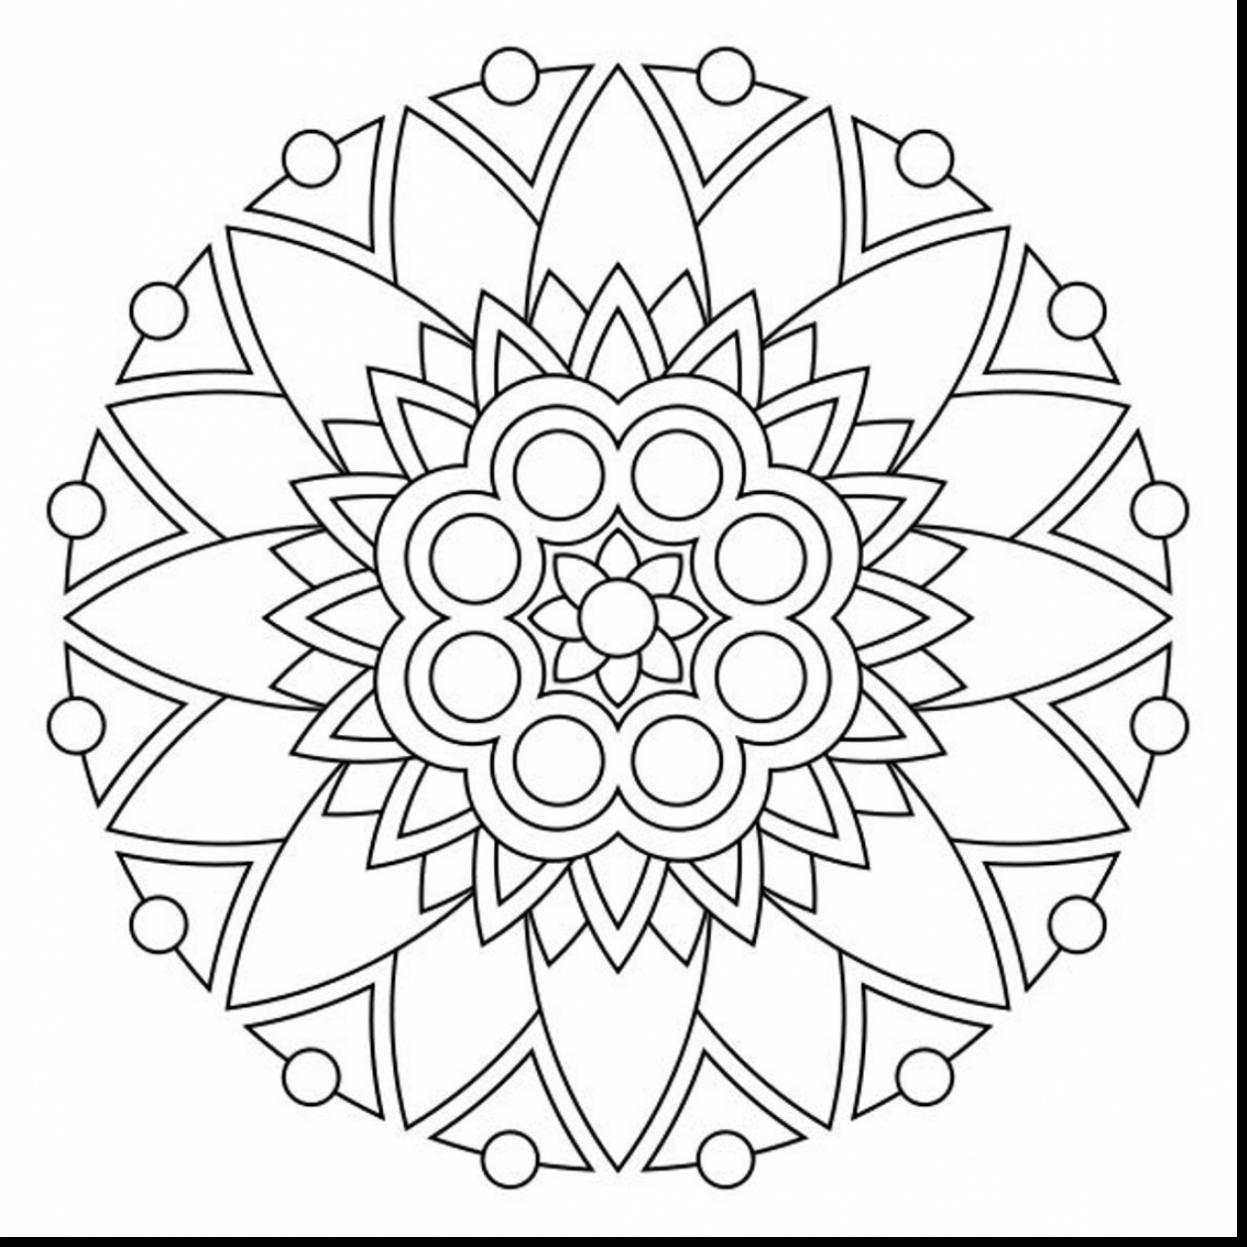 1247x1247 Printable Mandala Coloring Pages With Wallpapers Hd Desktop New